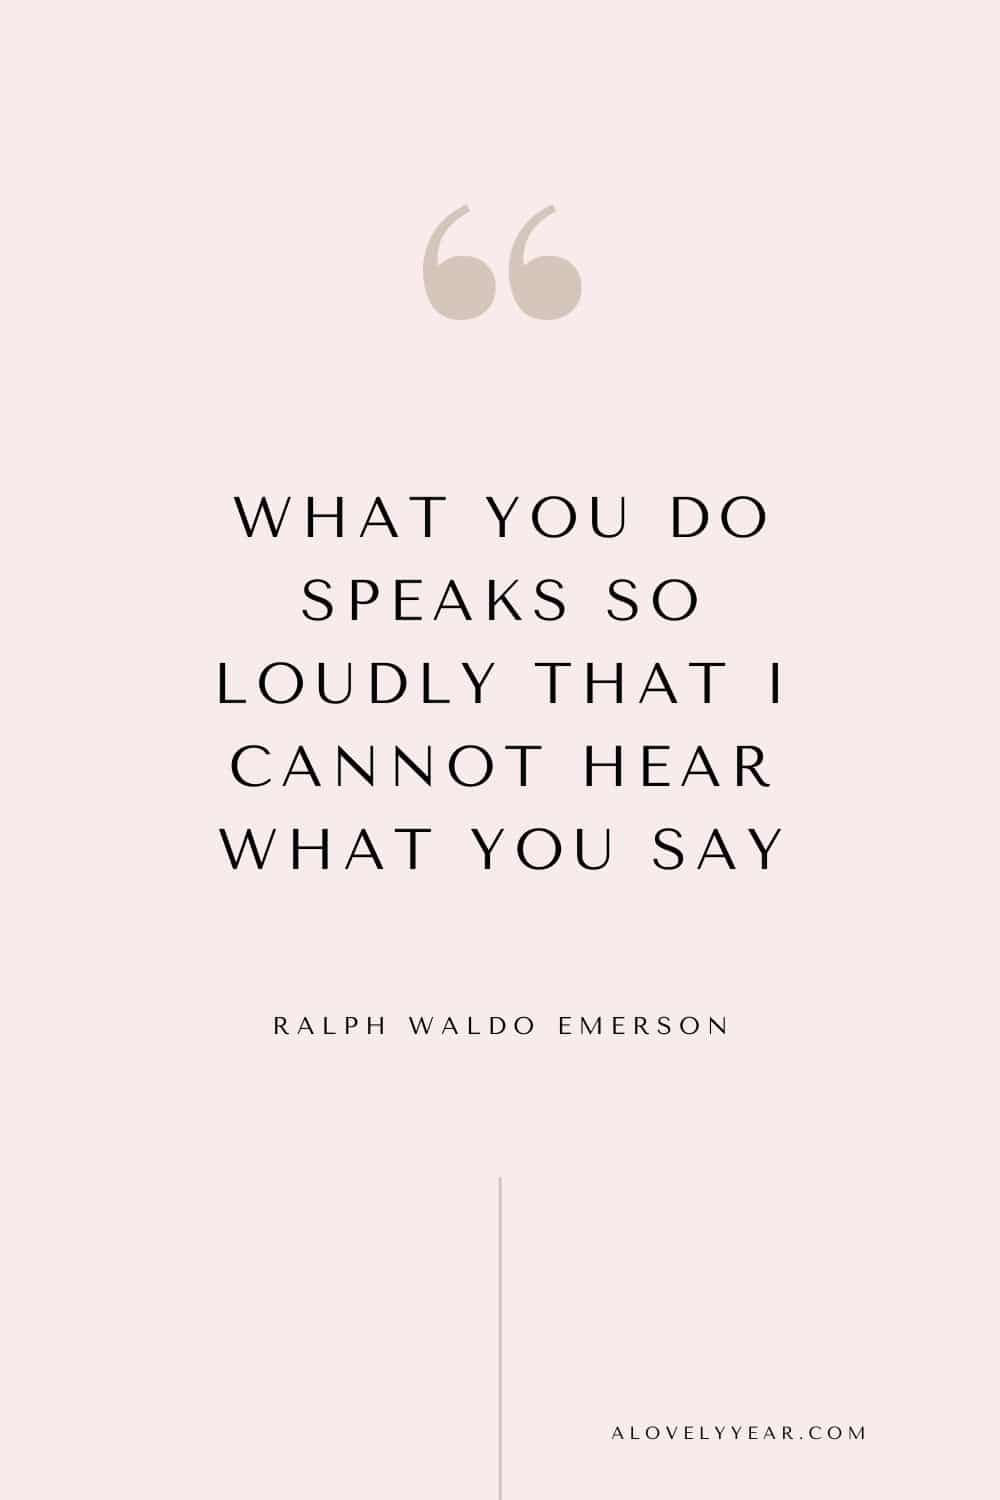 Get things done quote - What you do speaks so loudly that I cannot hear what you say. - Ralph Waldo Emerson